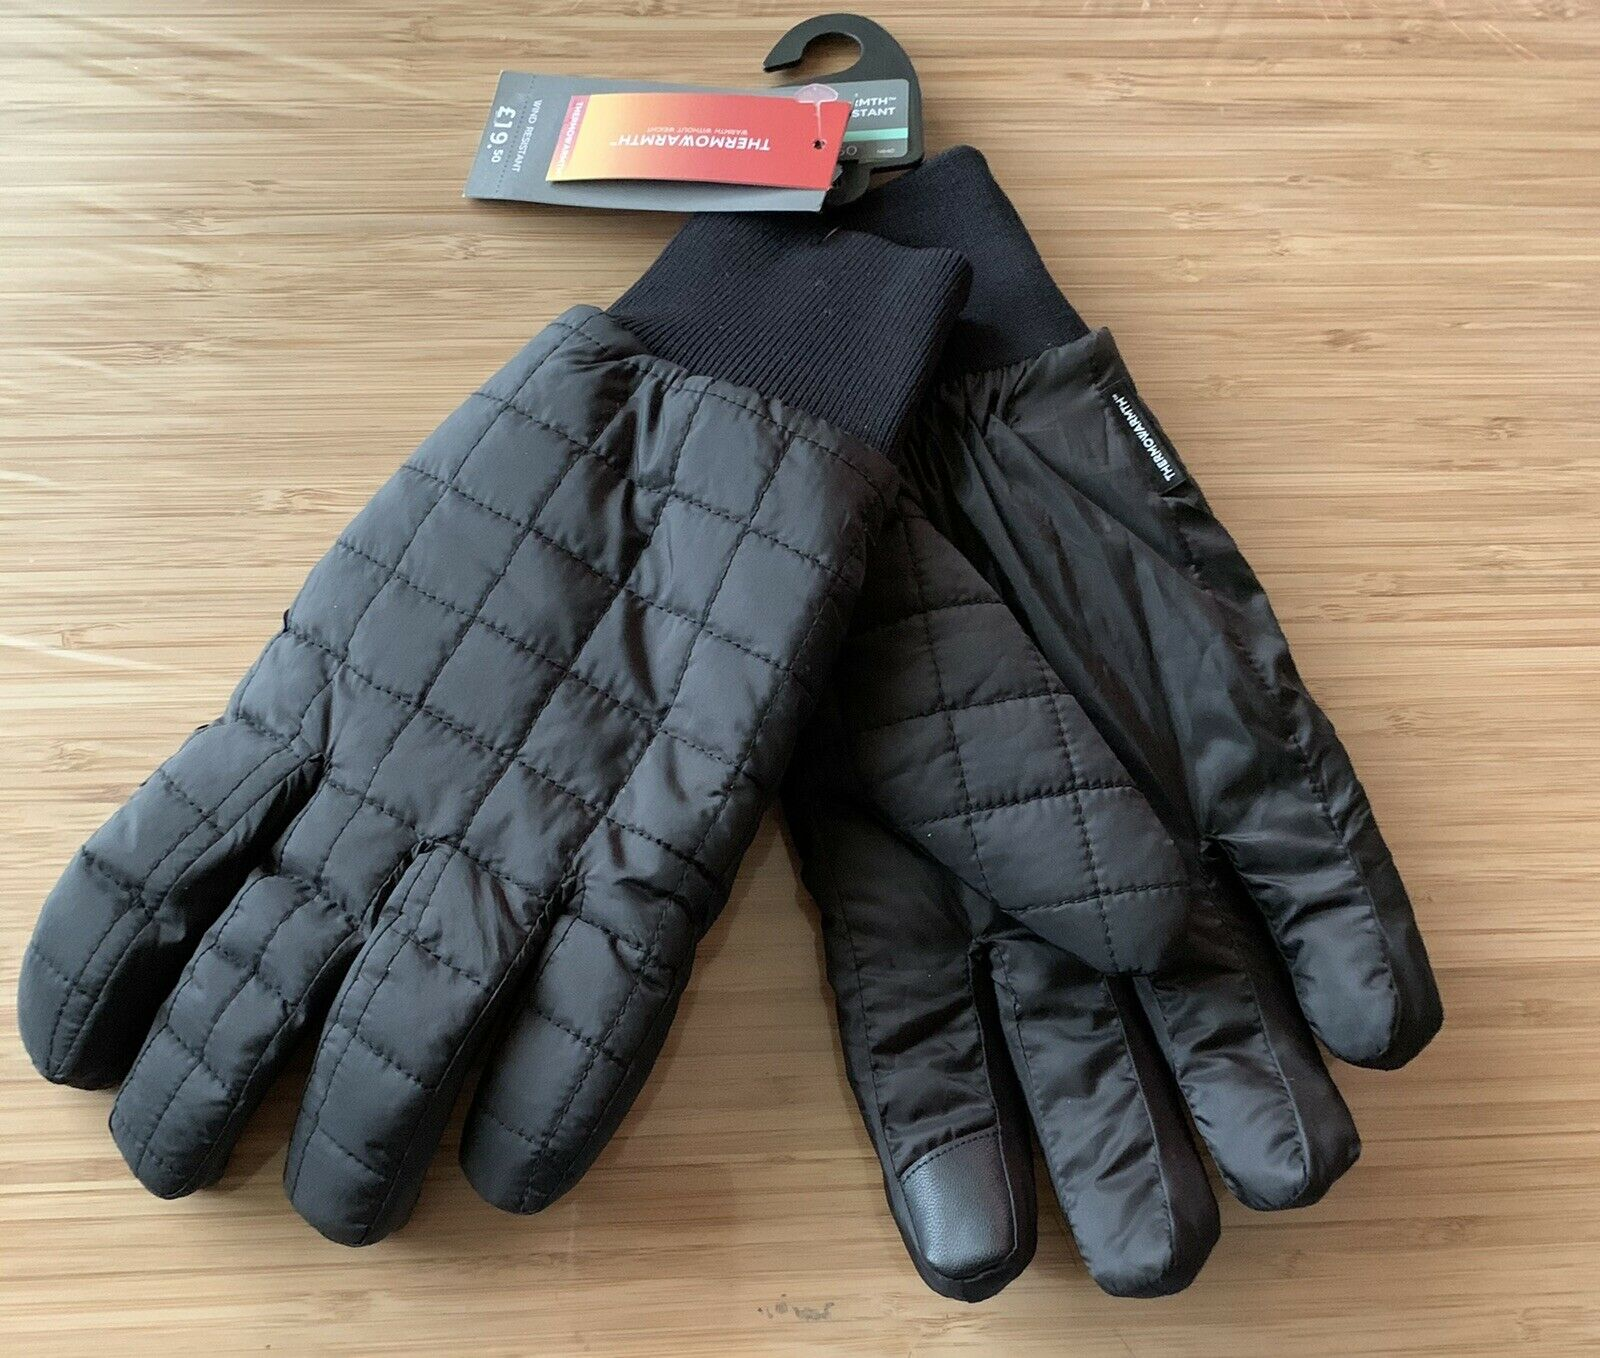 M&S Thermal Quilted Performance Gloves Black Touchscreen Compatible Size L/XL